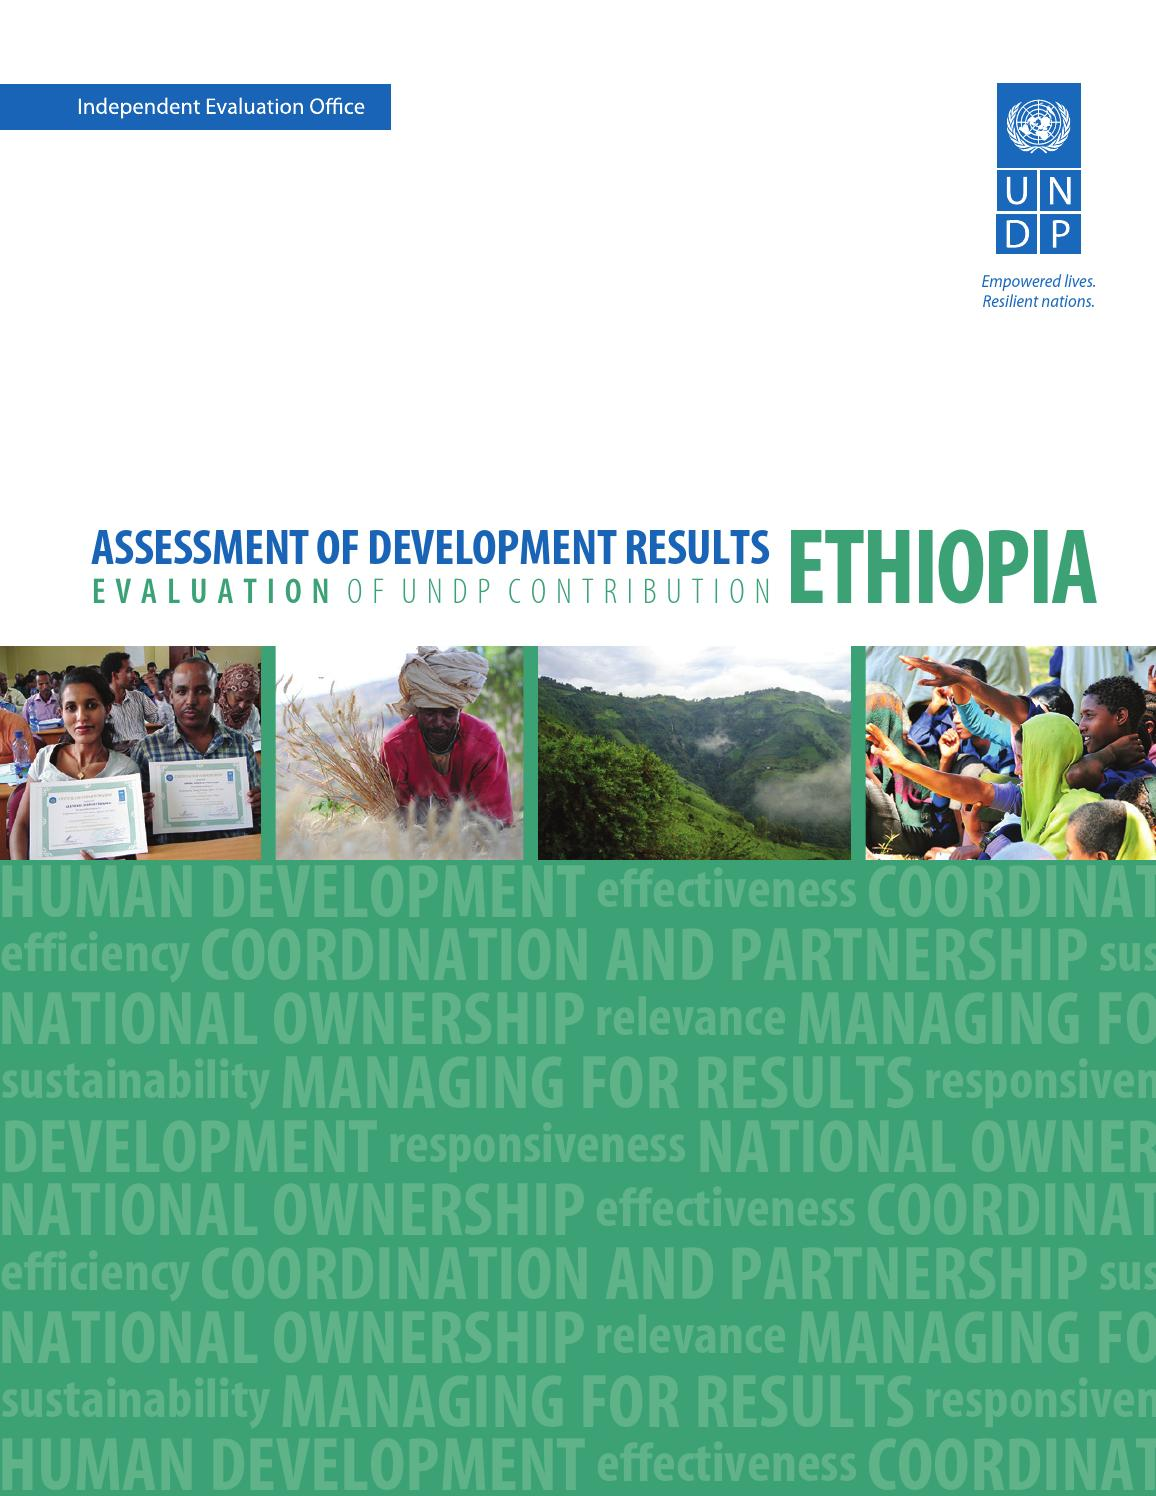 assessment of development results ethiopia by undp